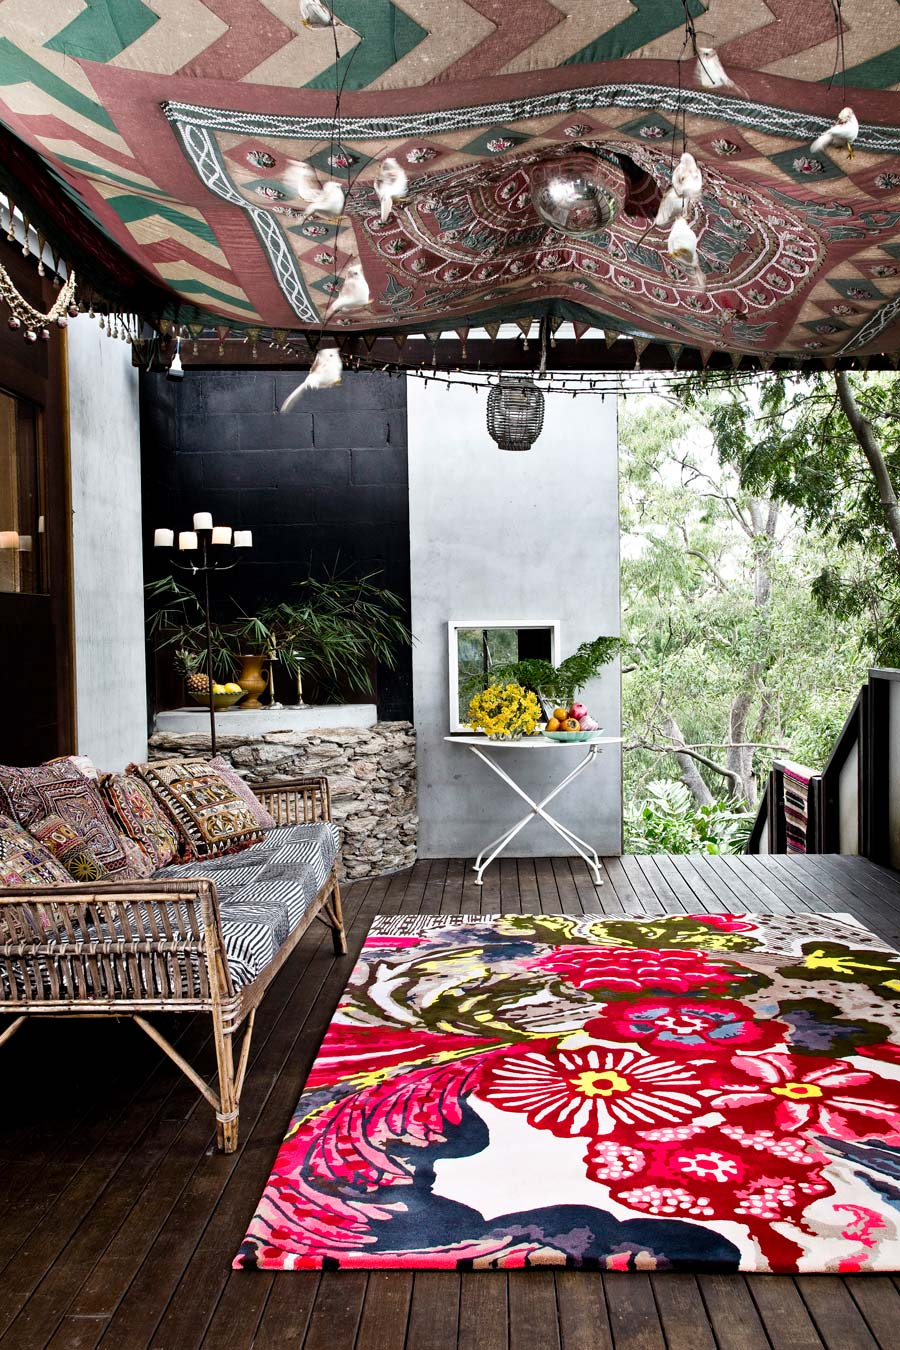 location living room of arcadia rug by easton pearson